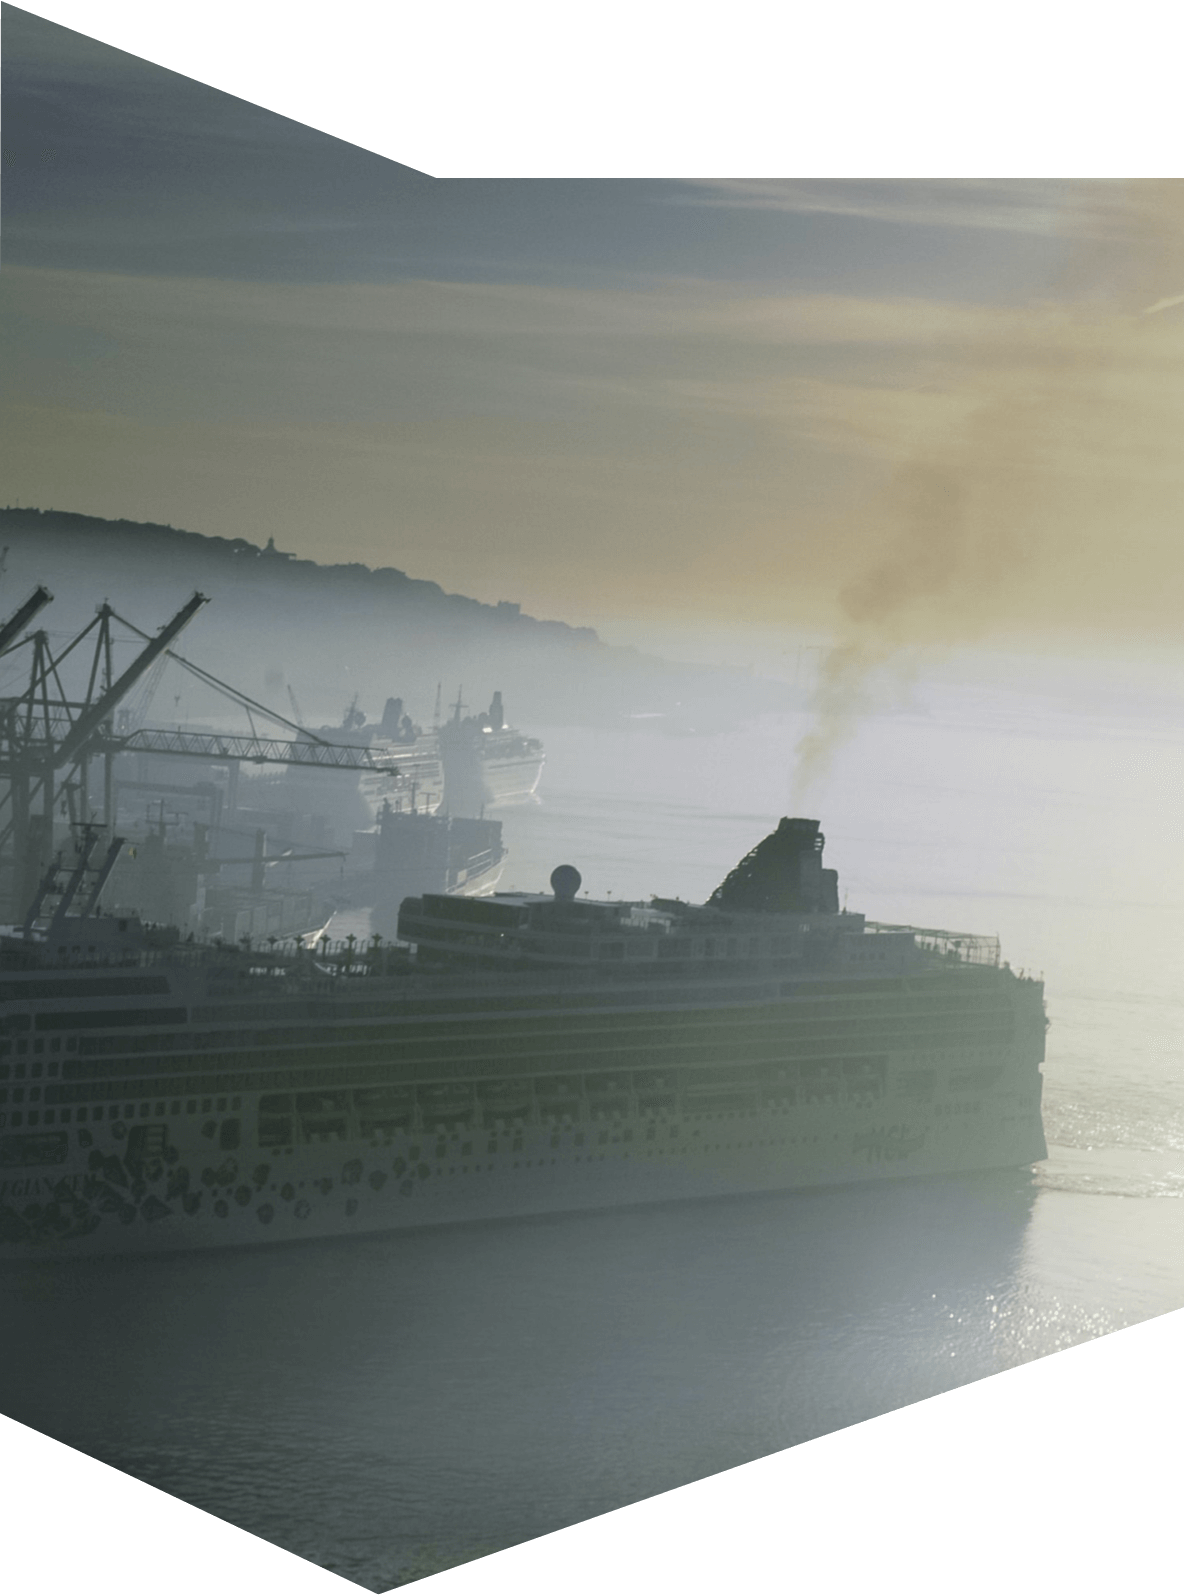 Polluting cruise ship in harbour